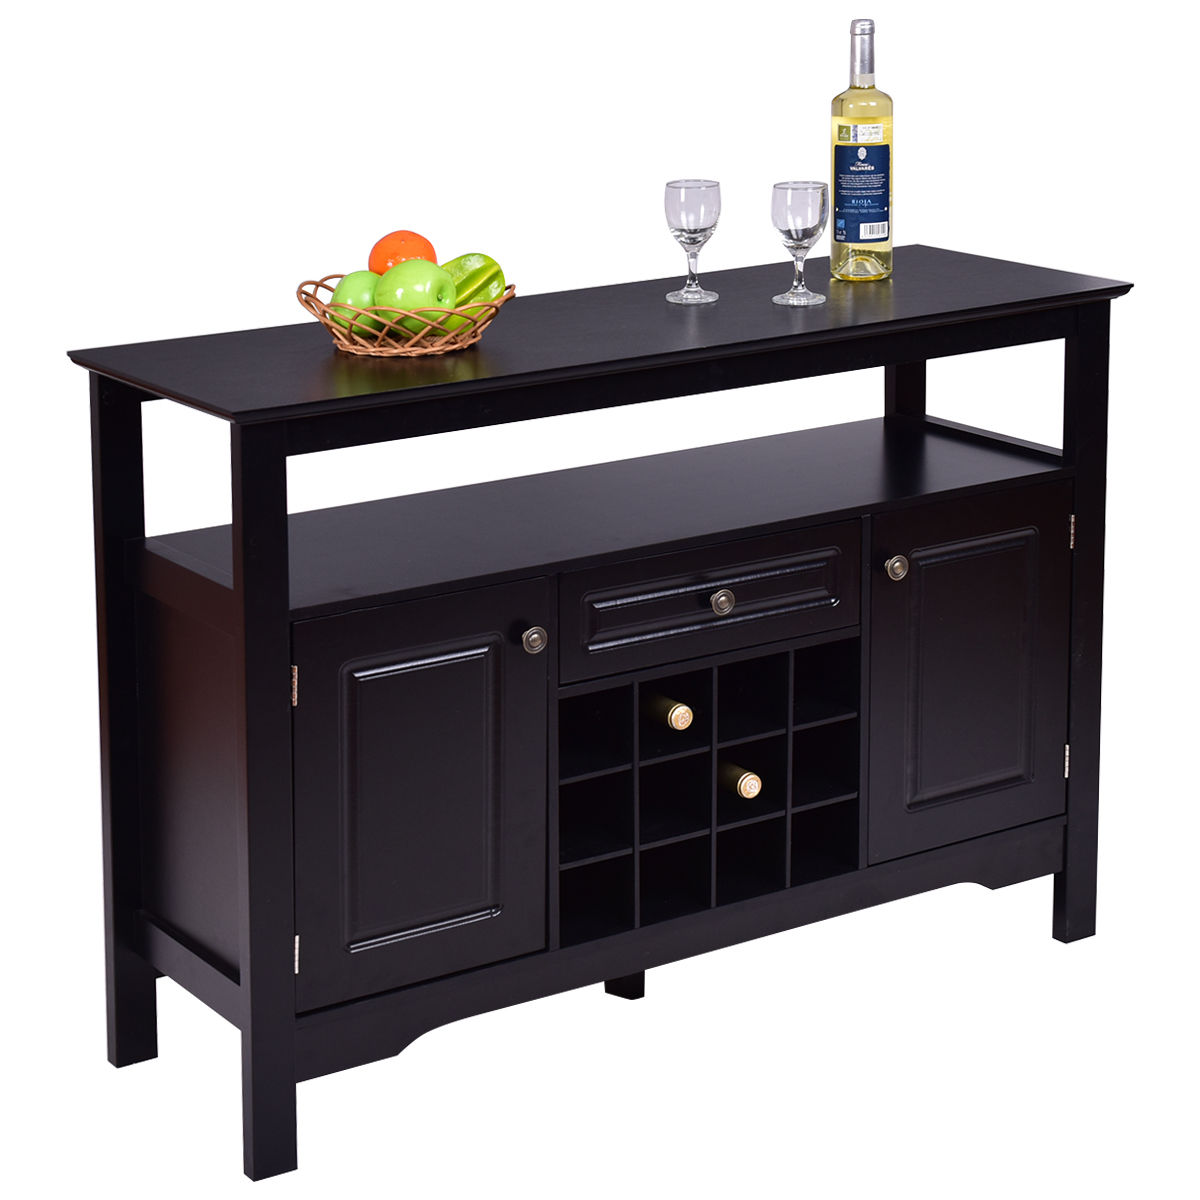 Gymax Storage Buffet Sever Cabinet Sideboard Table Wood Wine Rack by Gymax